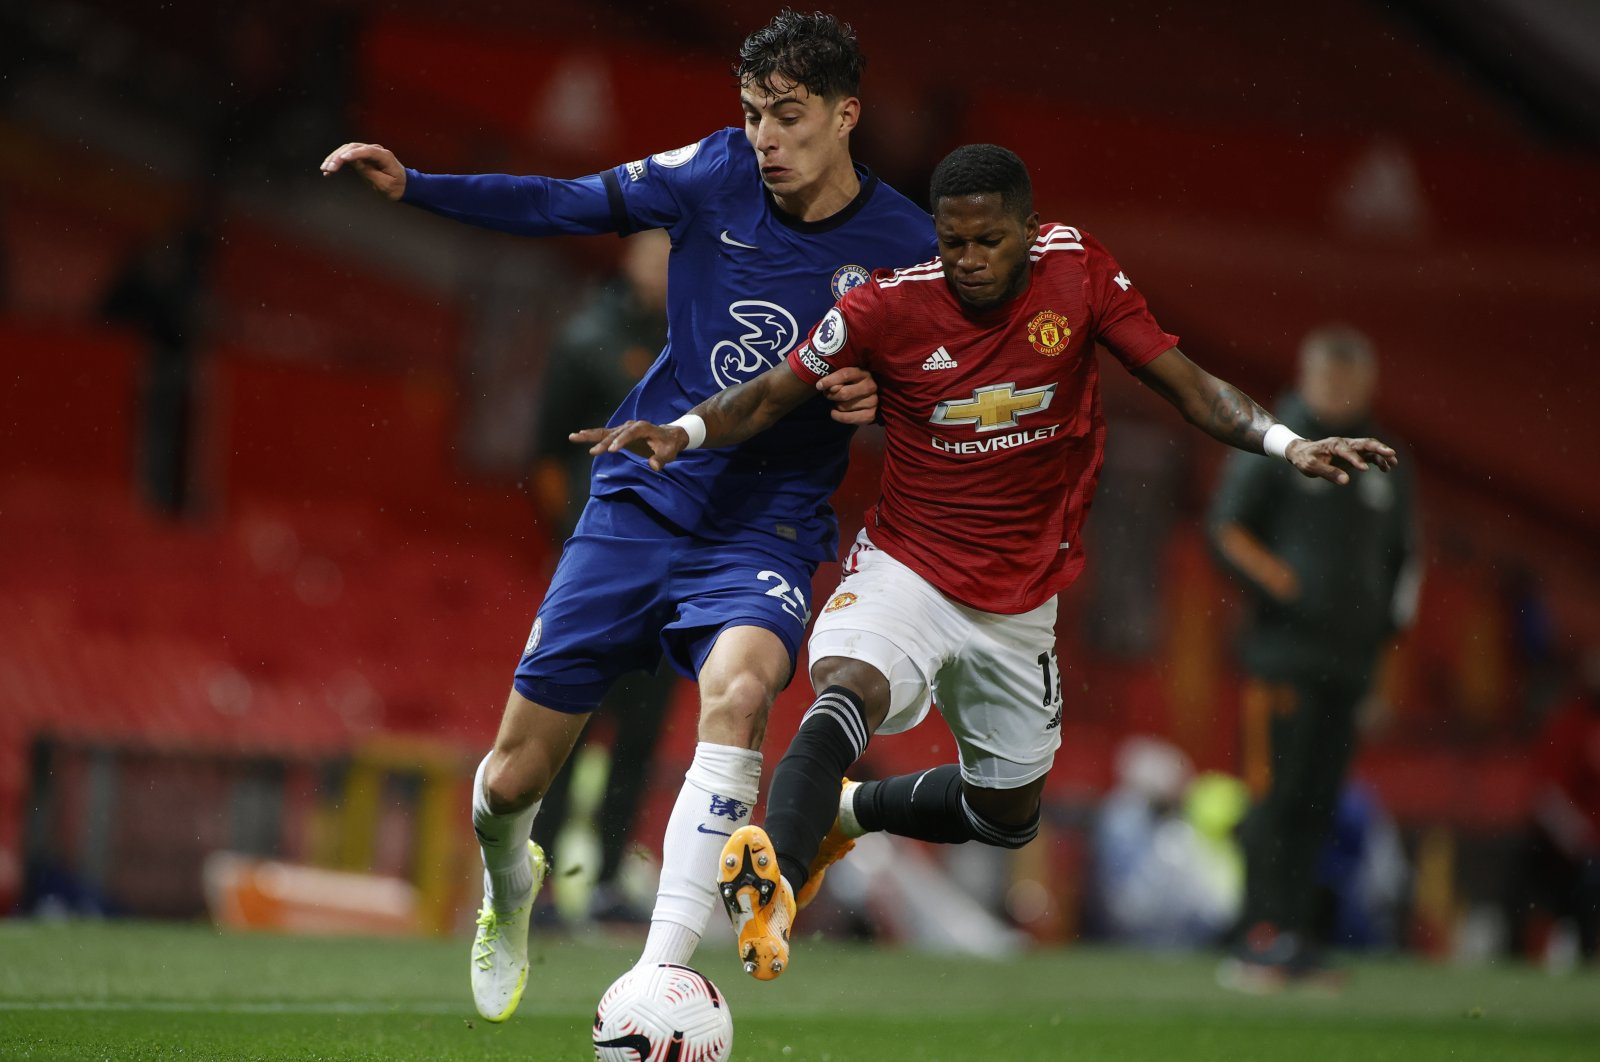 Chelsea's Kai Havertz (L) duels for the ball with Manchester United's Fred during a Premier League match at the Old Trafford stadium in Manchester, England, Oct. 24, 2020. (AP Photo)